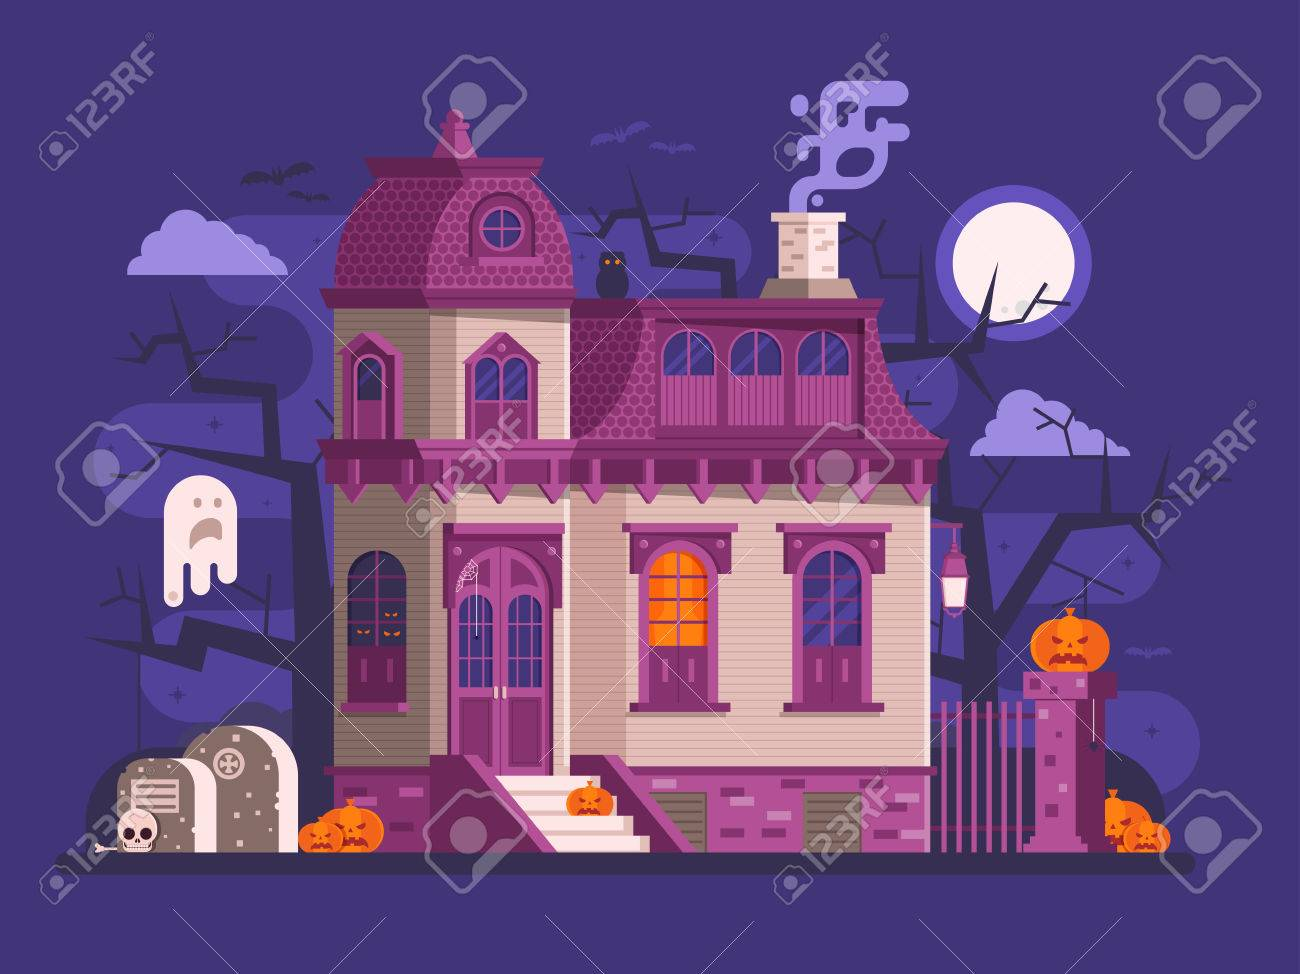 Halloween Ghost House Scene With Victorian Haunted Mansion Entrance Old Cemetery Spooks And Pumpkins